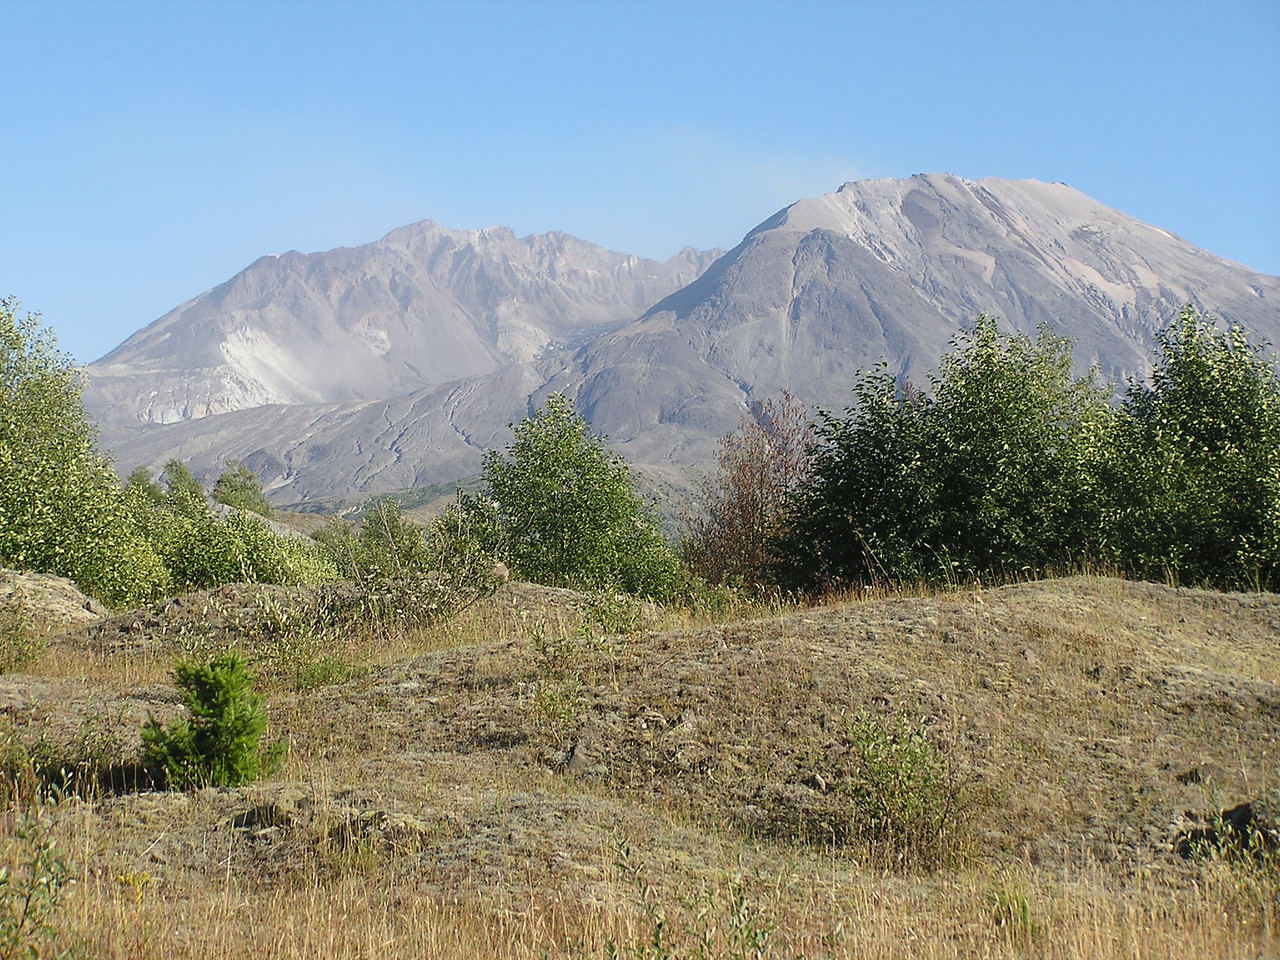 Mt St Helens from the Hummocks Trail.